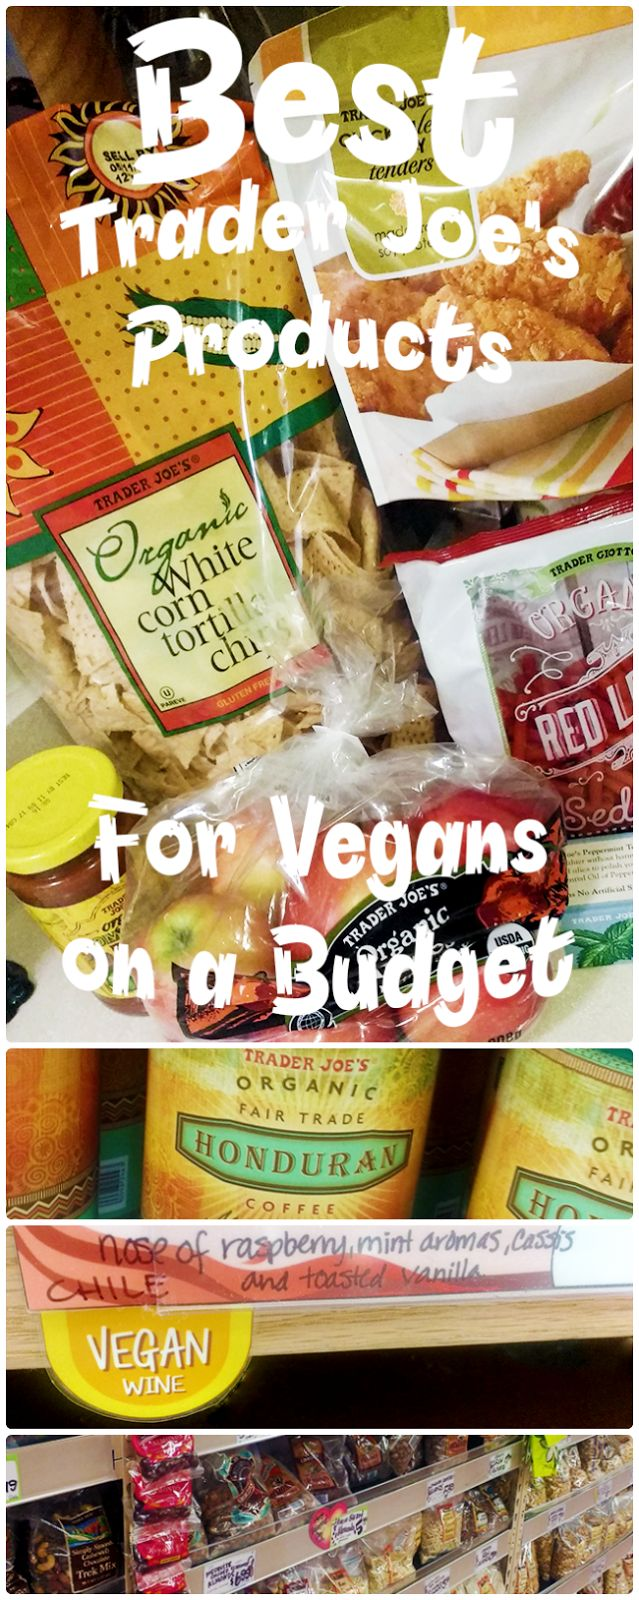 The Best Trader Joe's Products for Vegans on a Budget! If you're looking for budget-friendly vegan staples then you need to head over to your local Trader Joe's. They have everything from cheap organic tofu, cheap raw cashews, vegan wine, and more. Click here to read about my favorite vegan foods from Trader Joe's <3